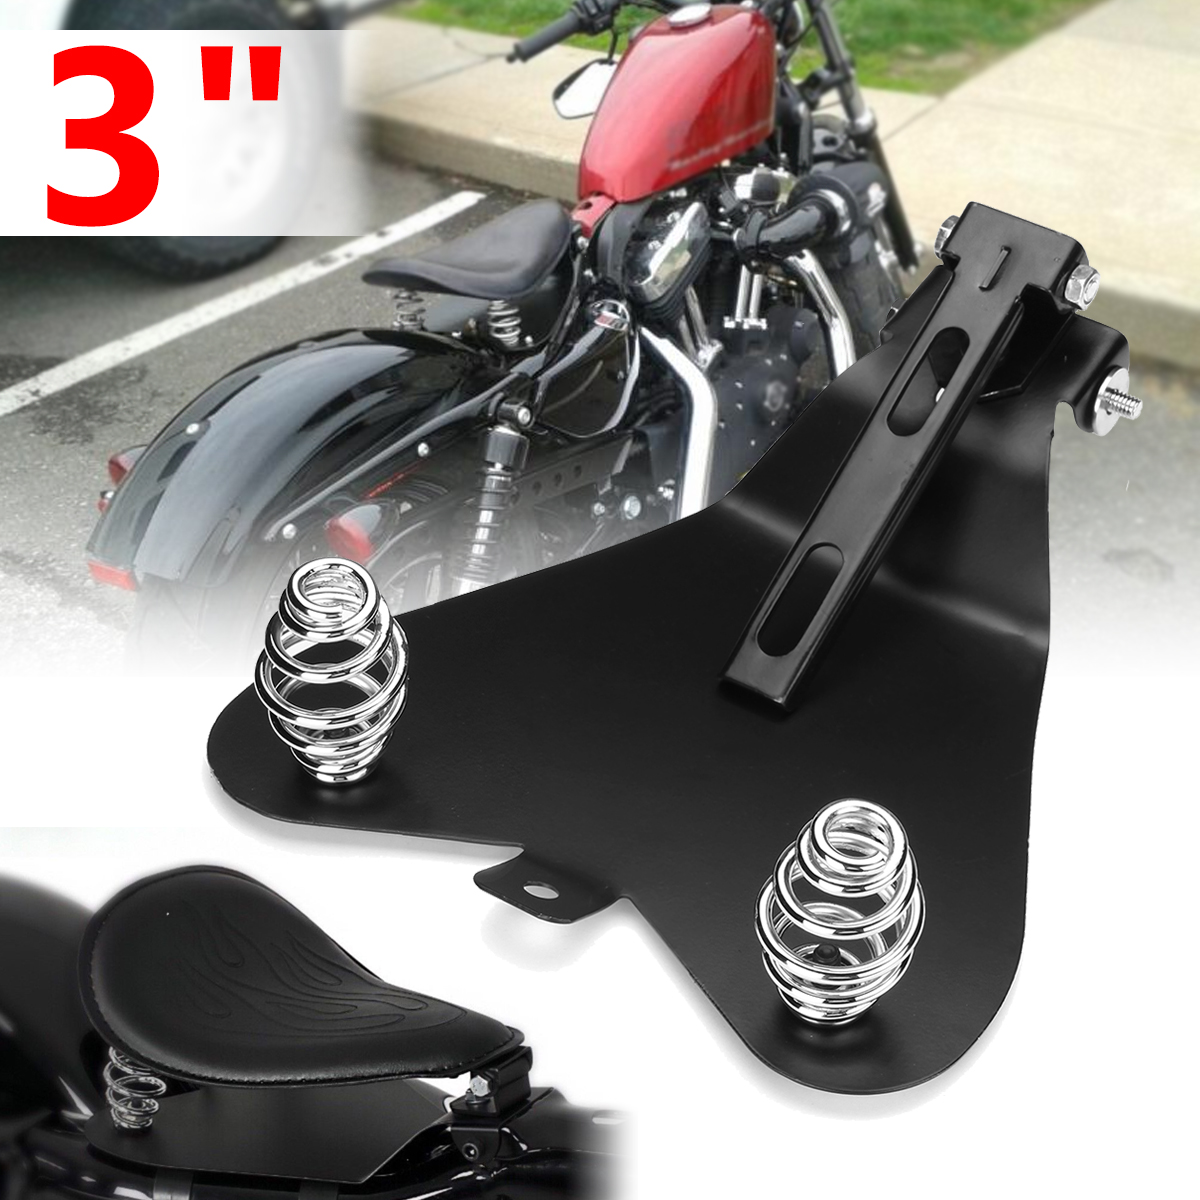 3inch Universal Motorcycle Seat Base Plate Spring bracket Solo Seat Pad Saddle for Harley/Honda/Yamaha/Kawasaki/Suzuki/Sportster3inch Universal Motorcycle Seat Base Plate Spring bracket Solo Seat Pad Saddle for Harley/Honda/Yamaha/Kawasaki/Suzuki/Sportster